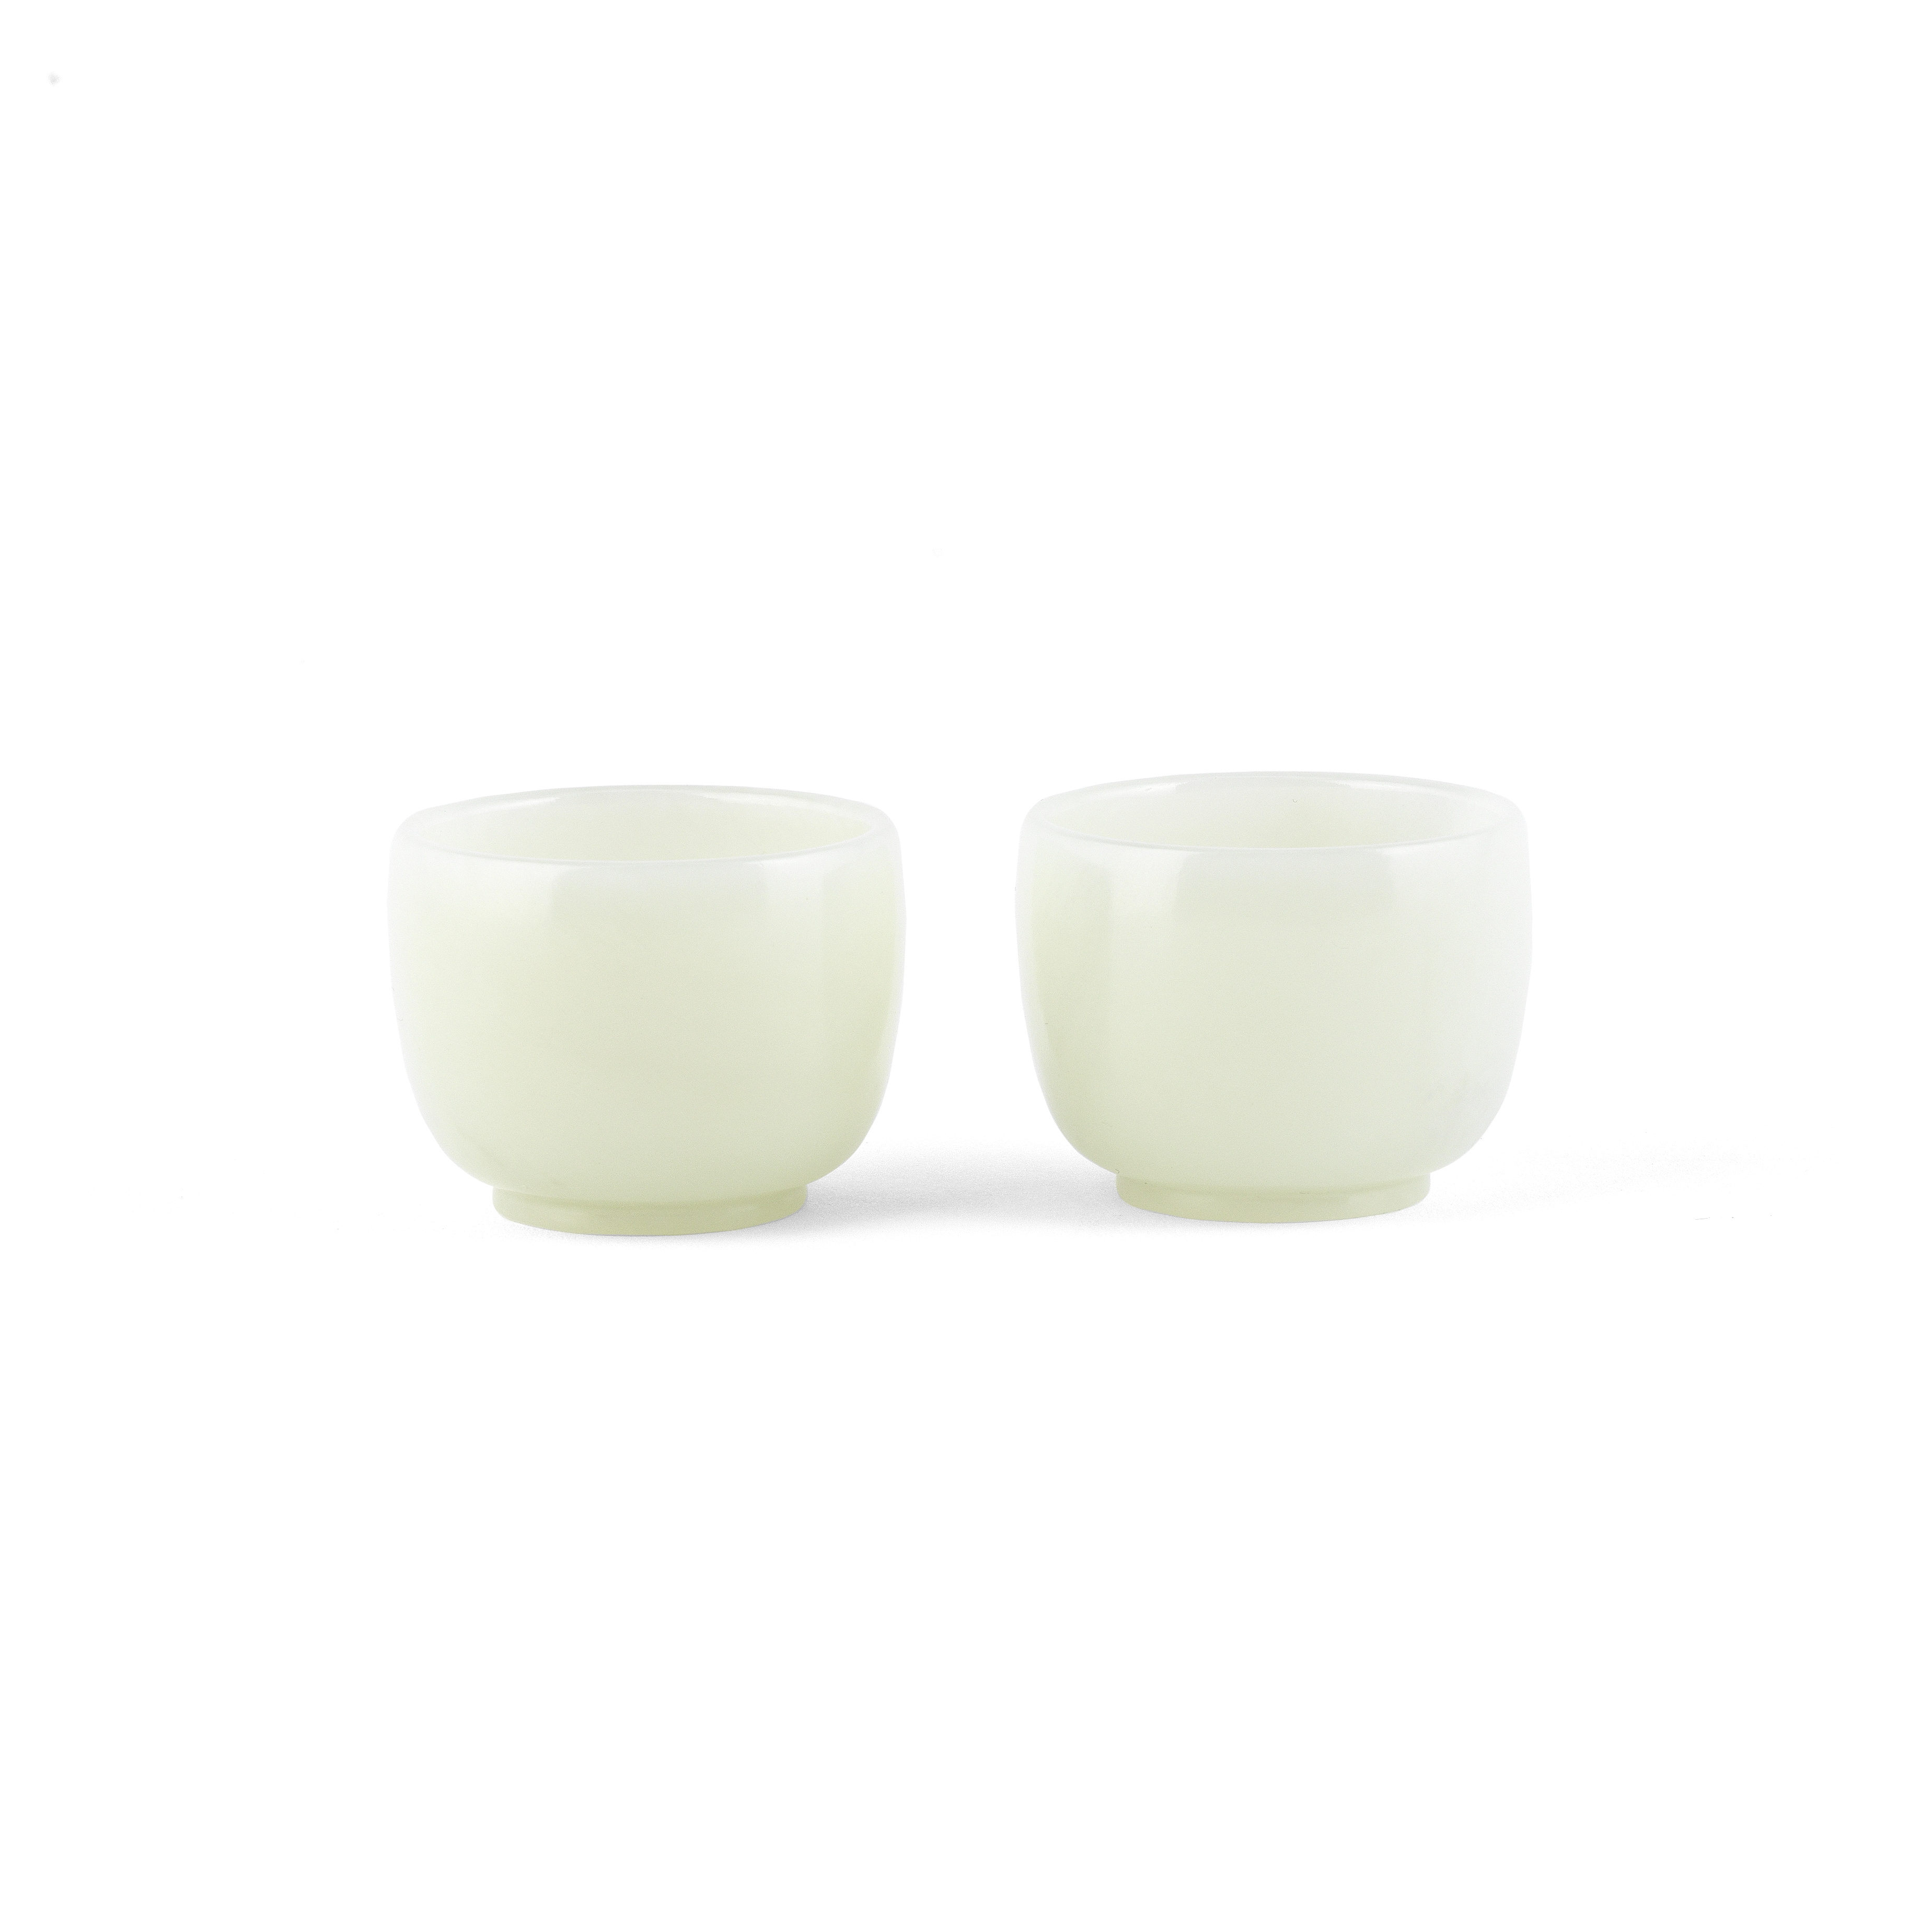 A PAIR OF PALE JADE CUPS 18th/19th century (2)